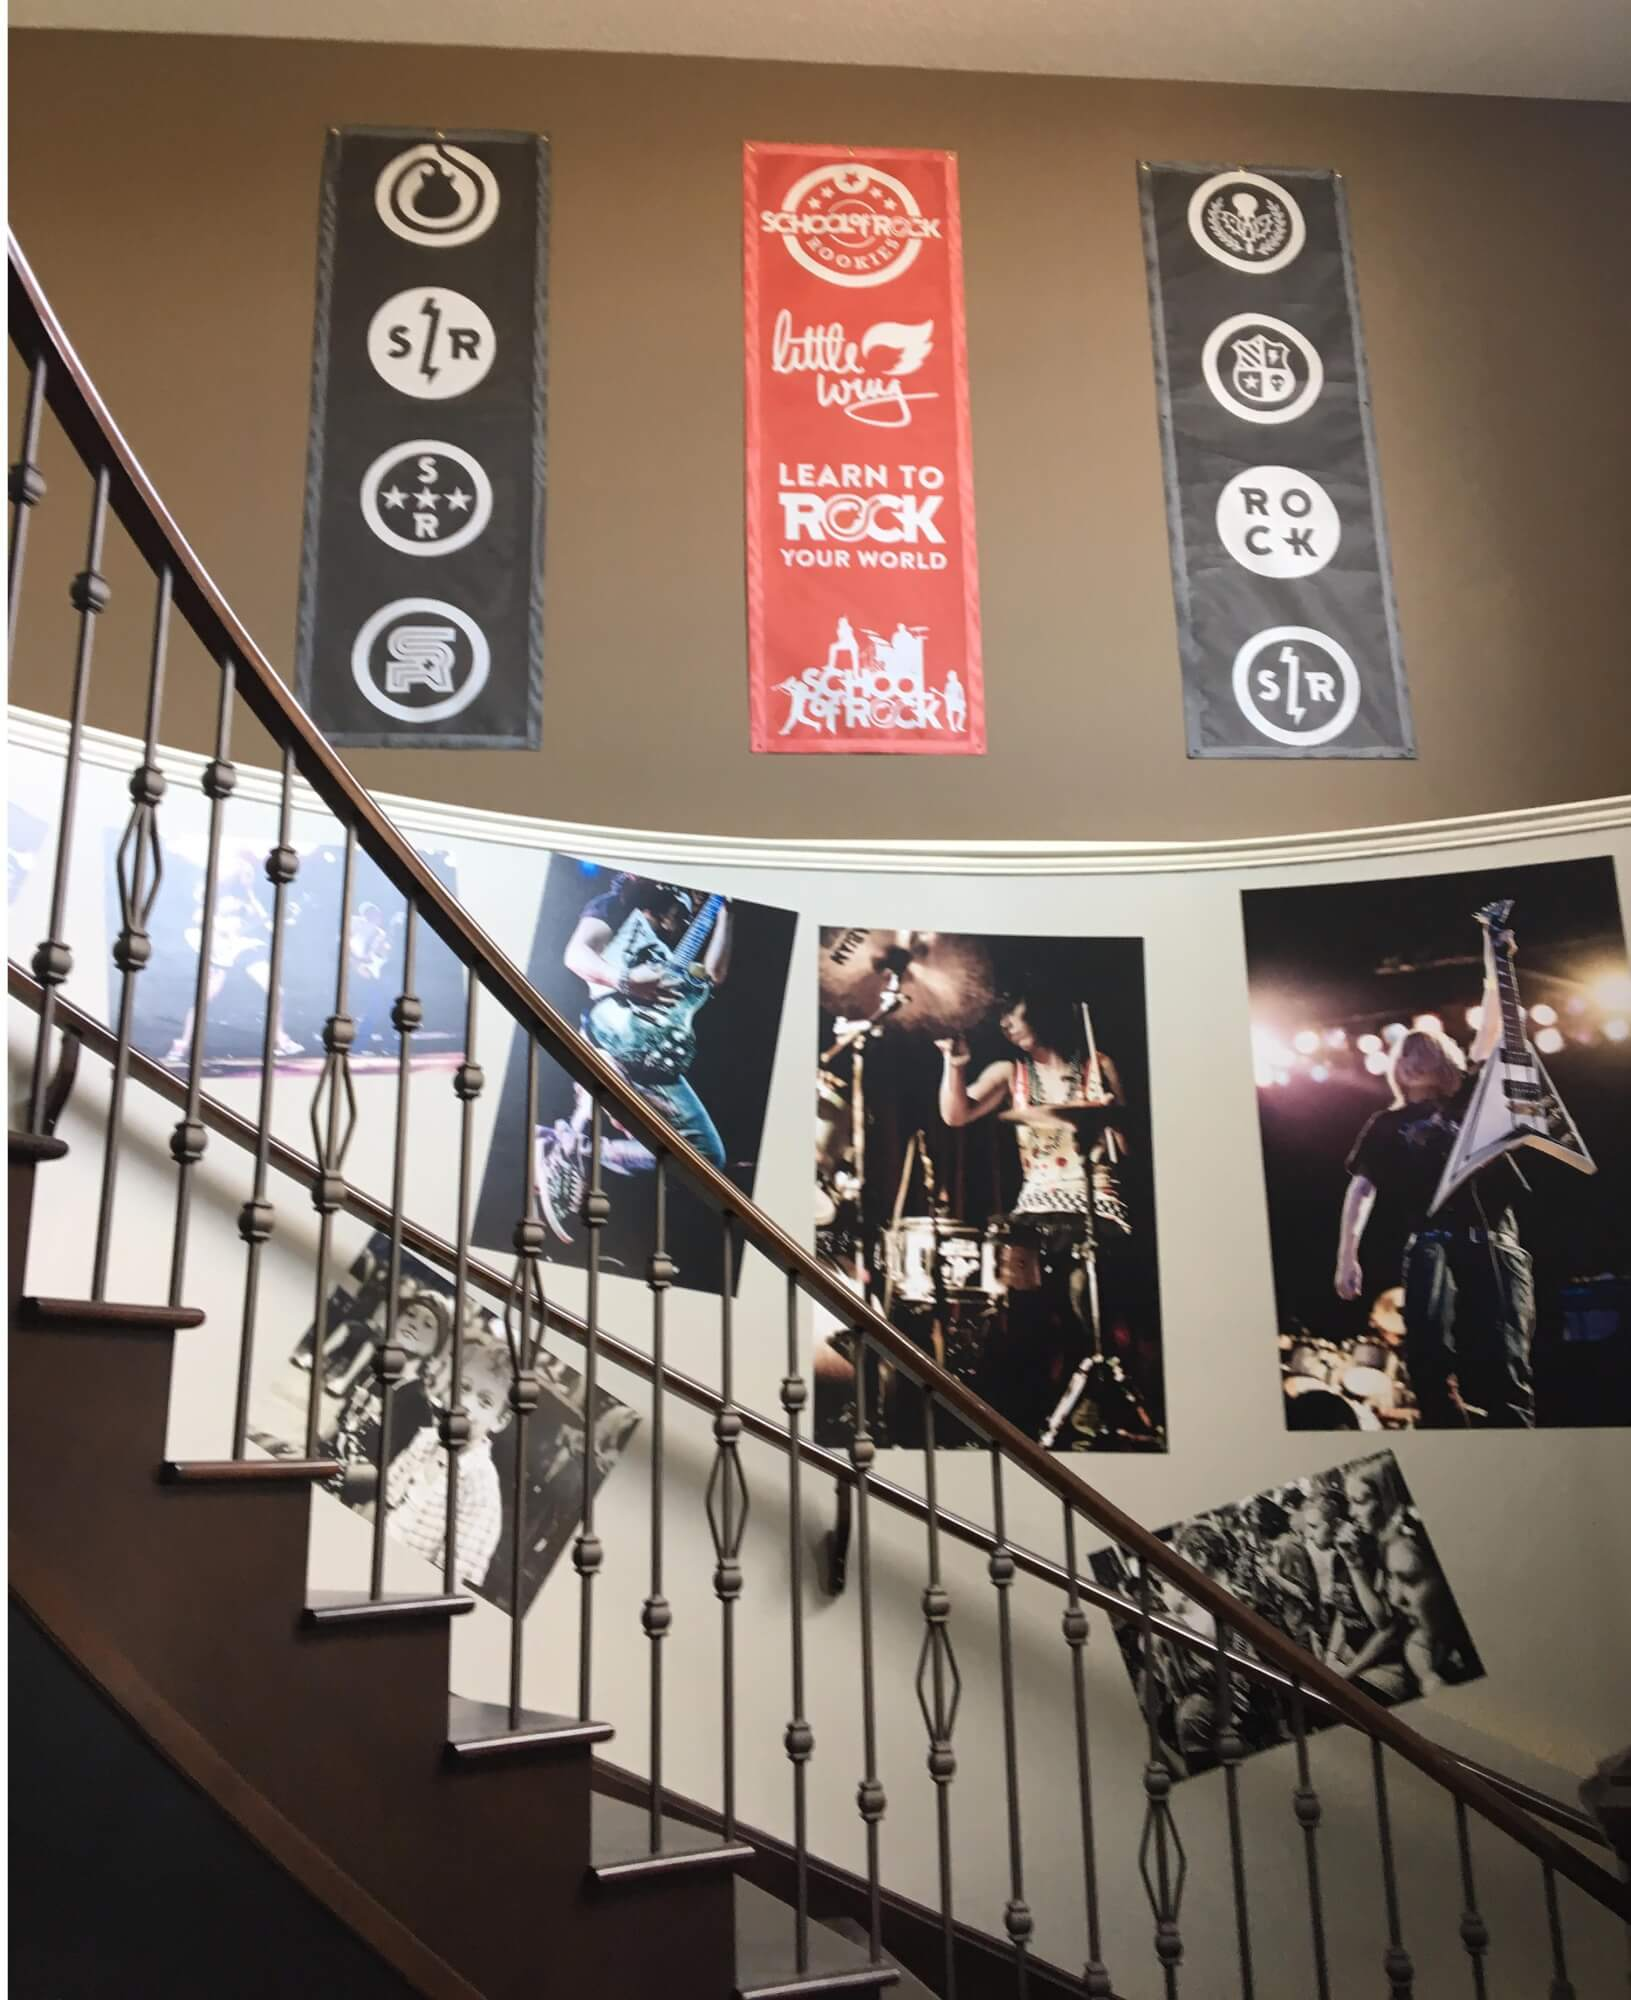 Great imagery at the School of Rock Calgary South overlooking our reception area.